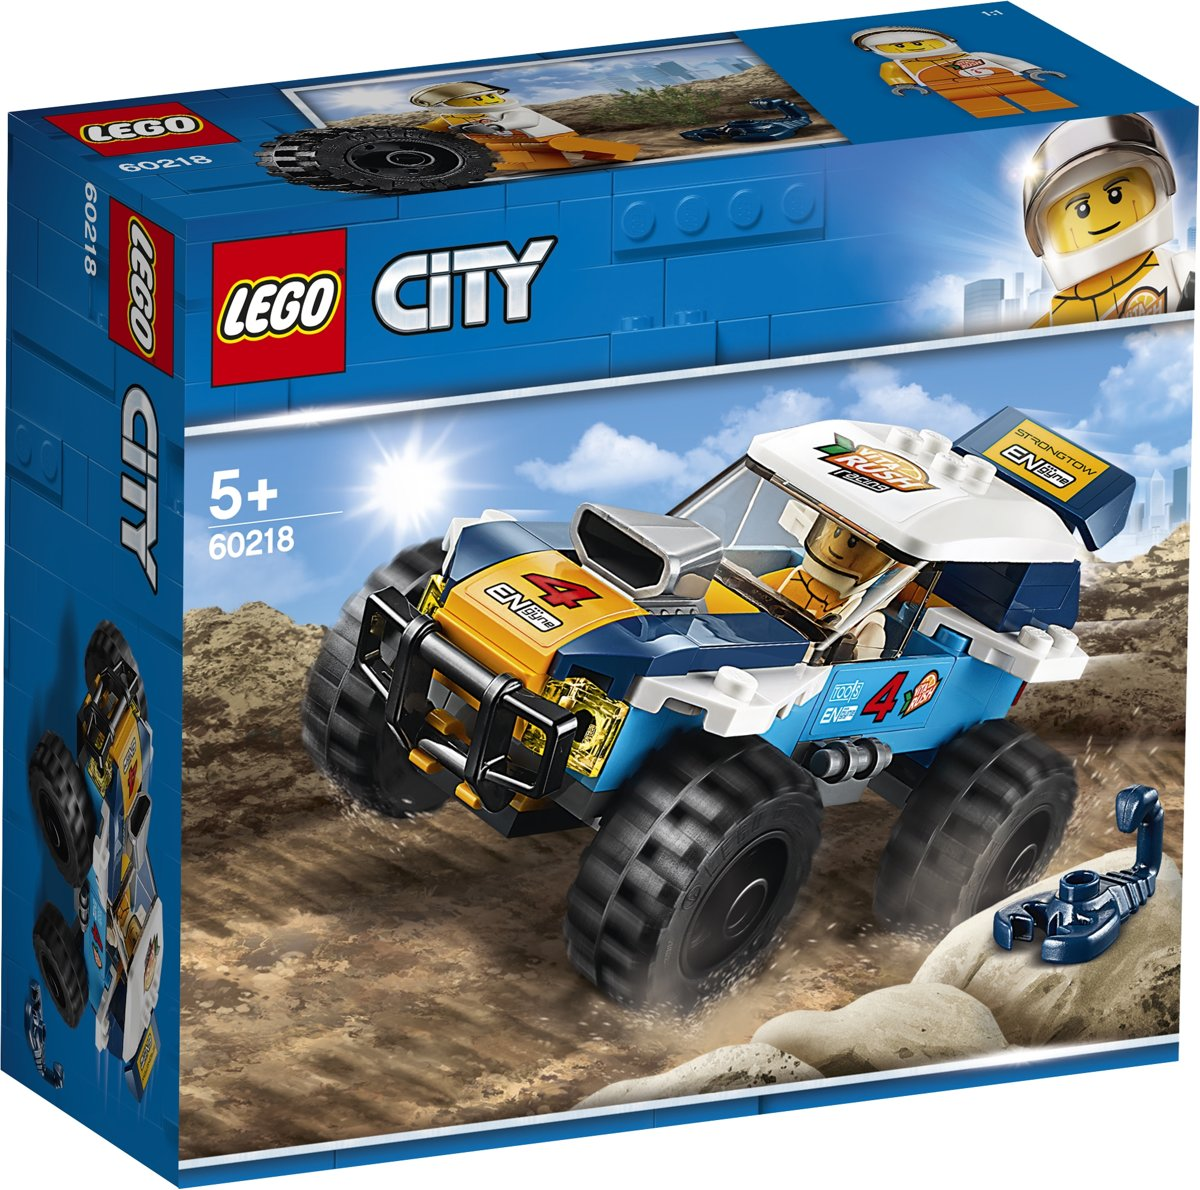 LEGO City Woestijn Rallywagen - 60218